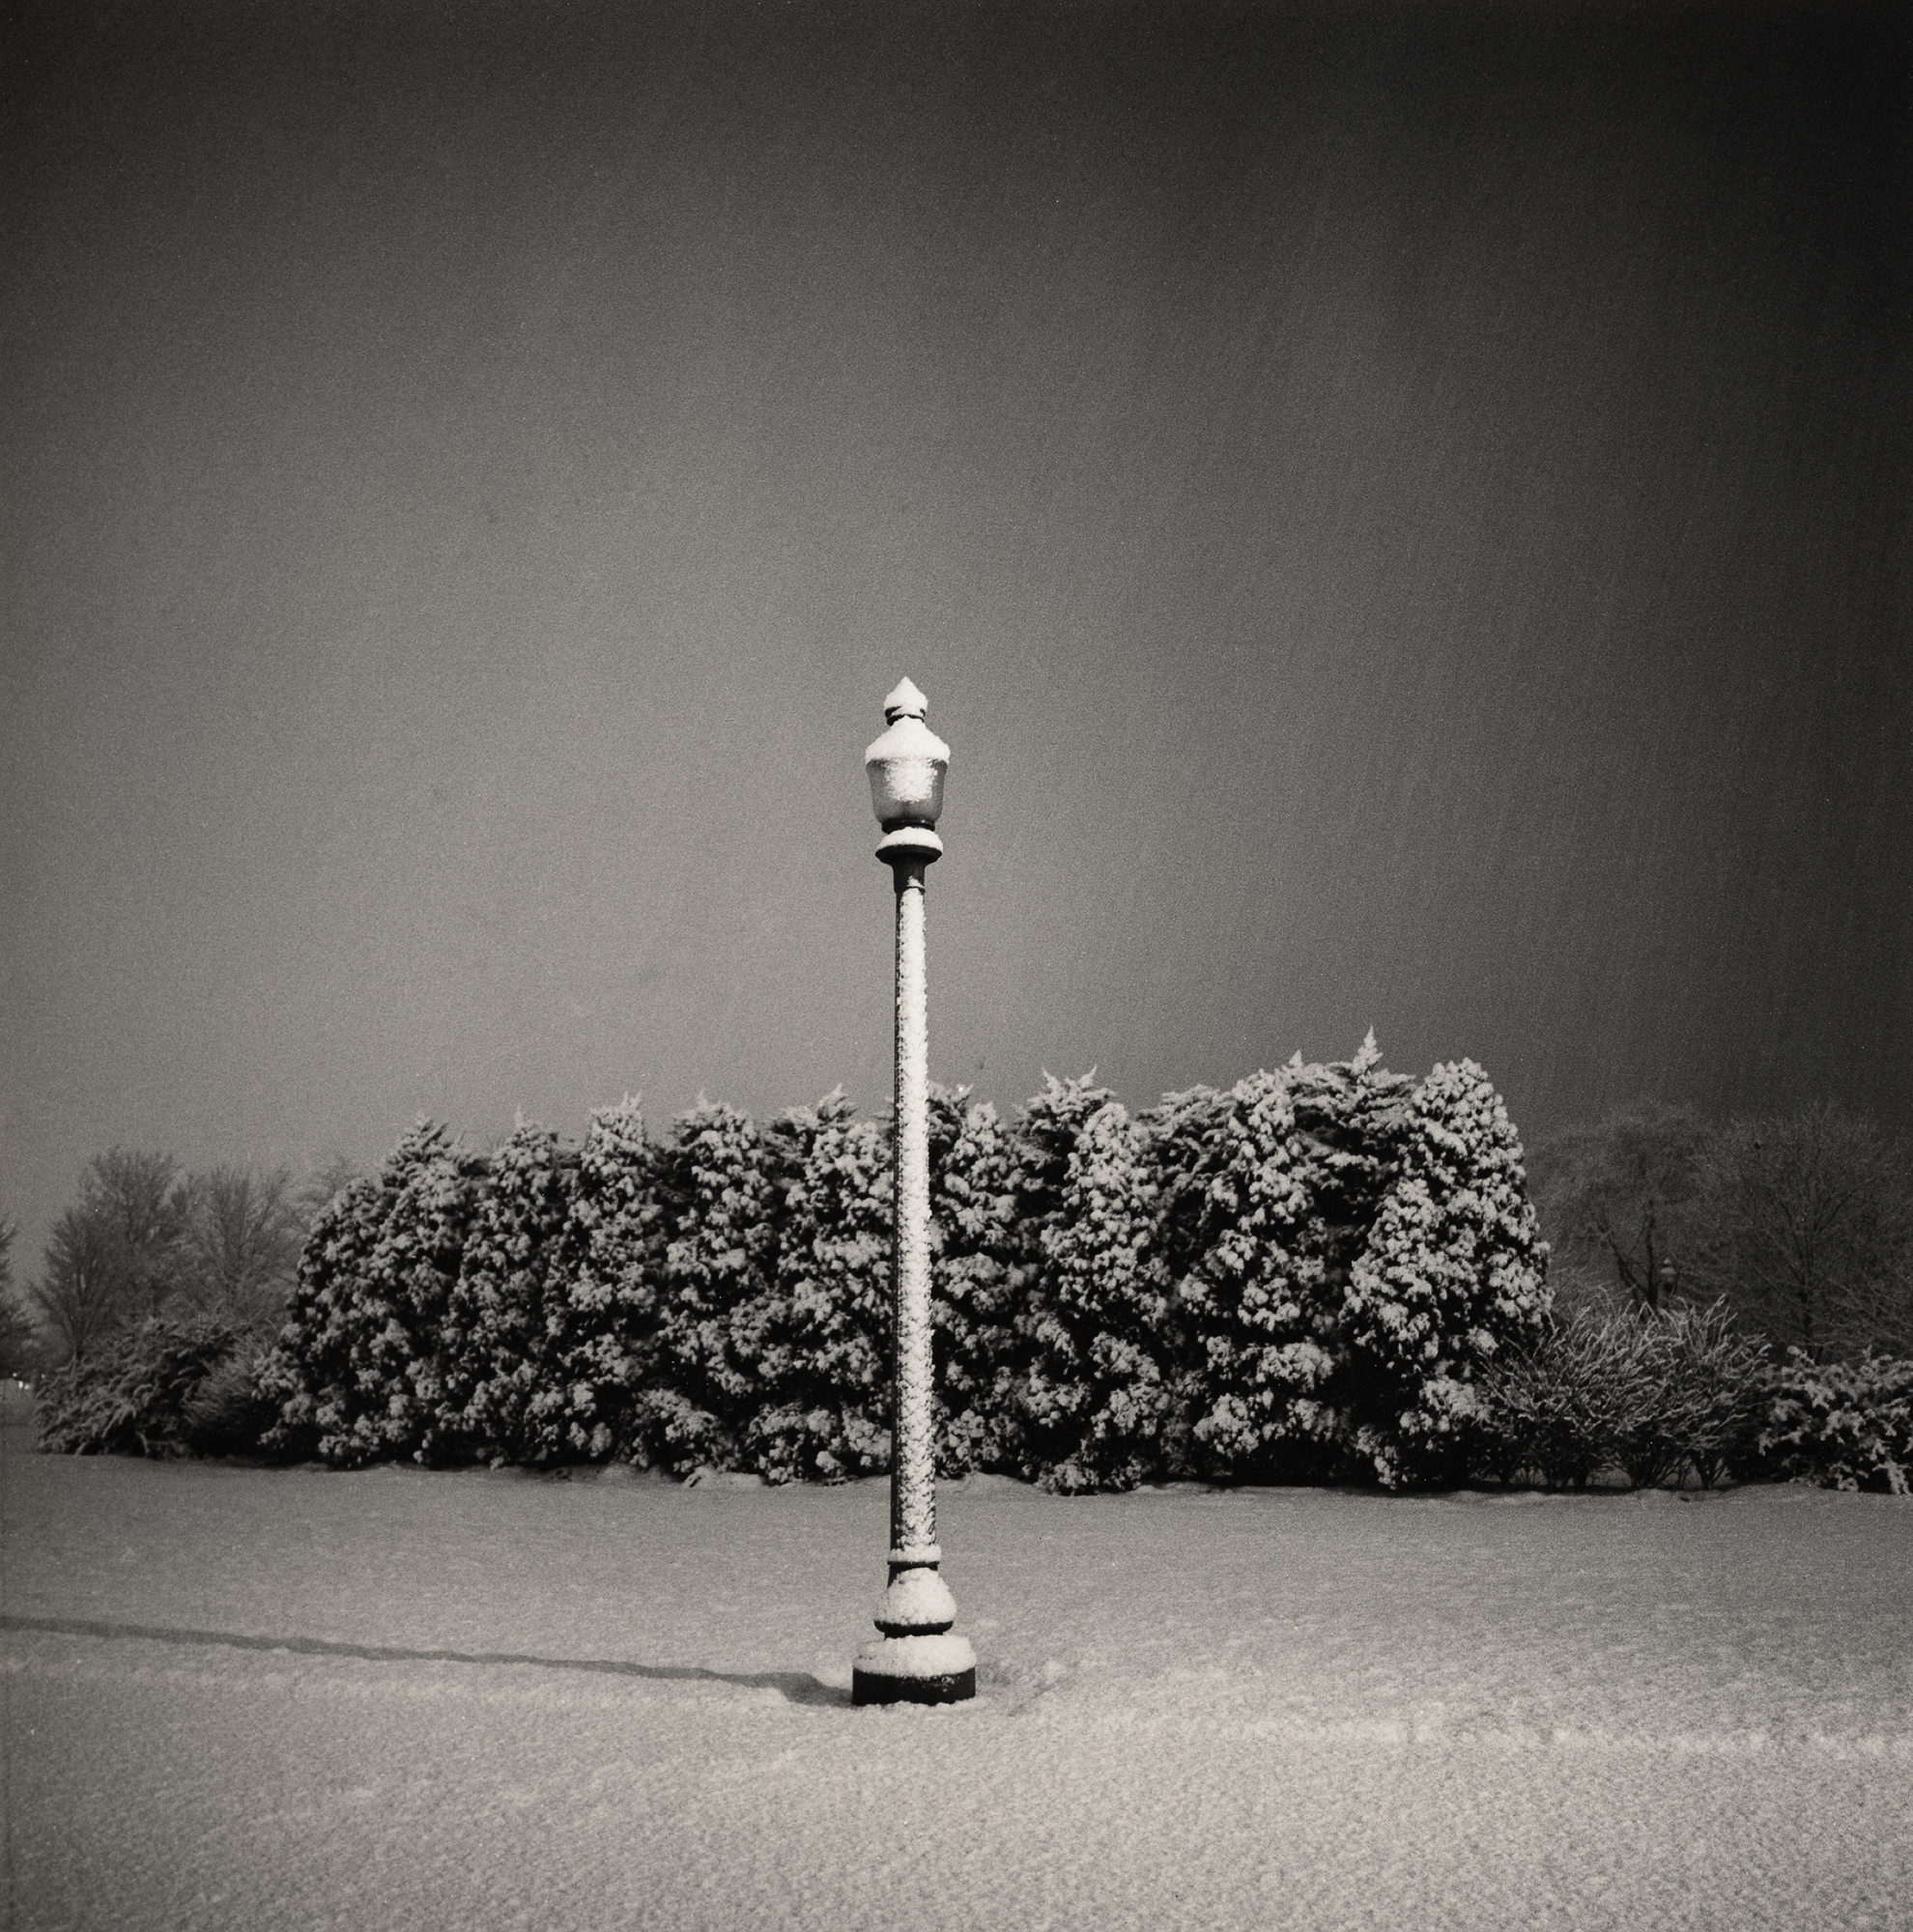 lamp_post_january_snow_1998.jpg